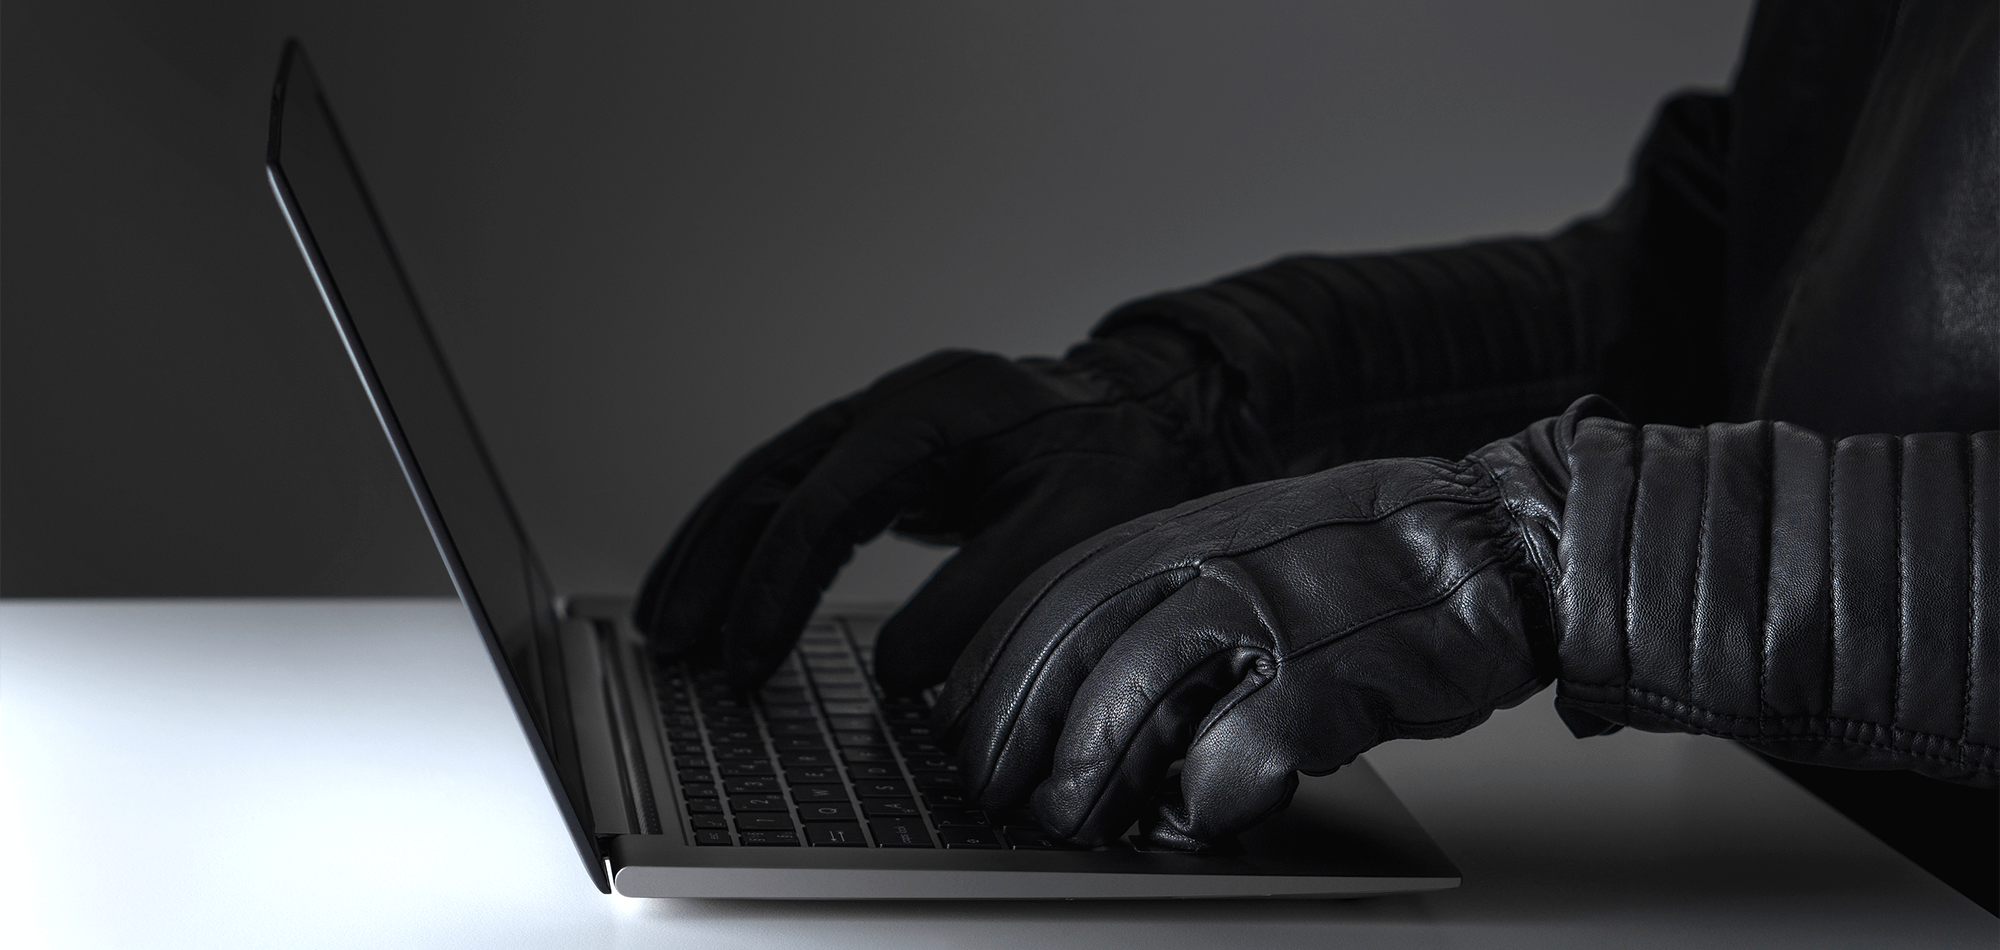 Not Having Secure WiFi Is Risky Business for Big Business